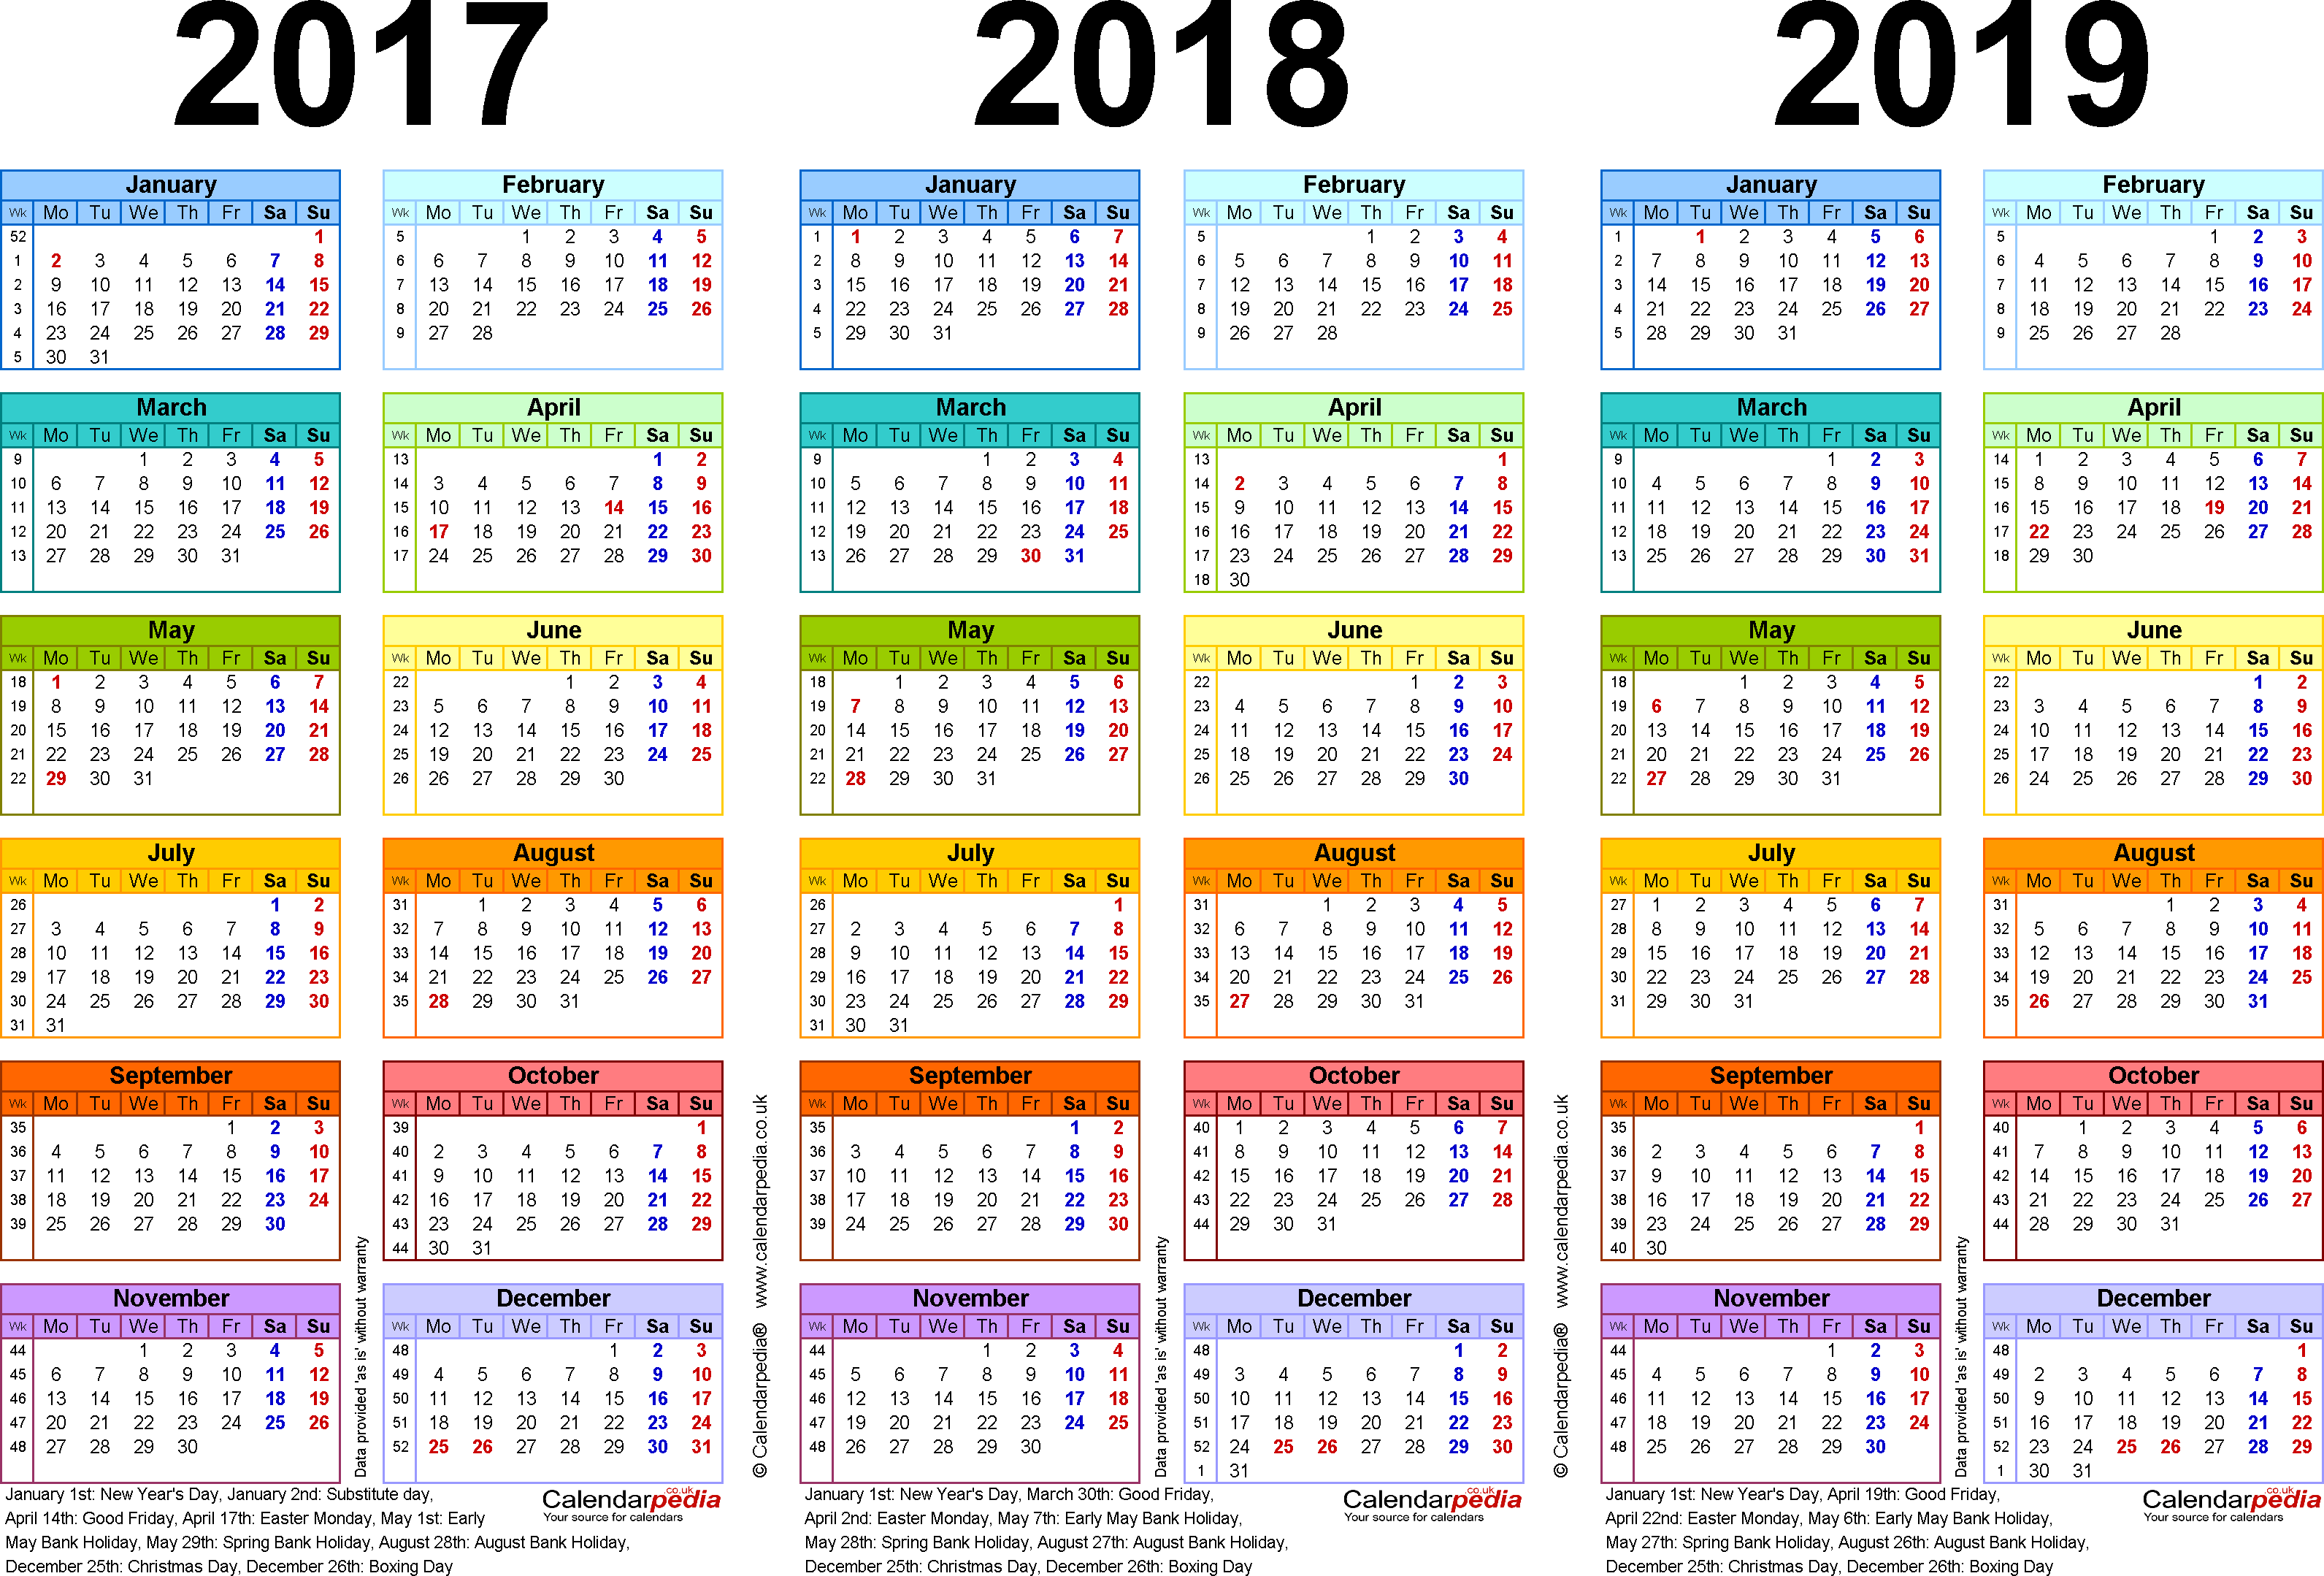 Download Template 1: Word template for three year calendar 2017-2019 in colour (landscape orientation, 1 page, A4)